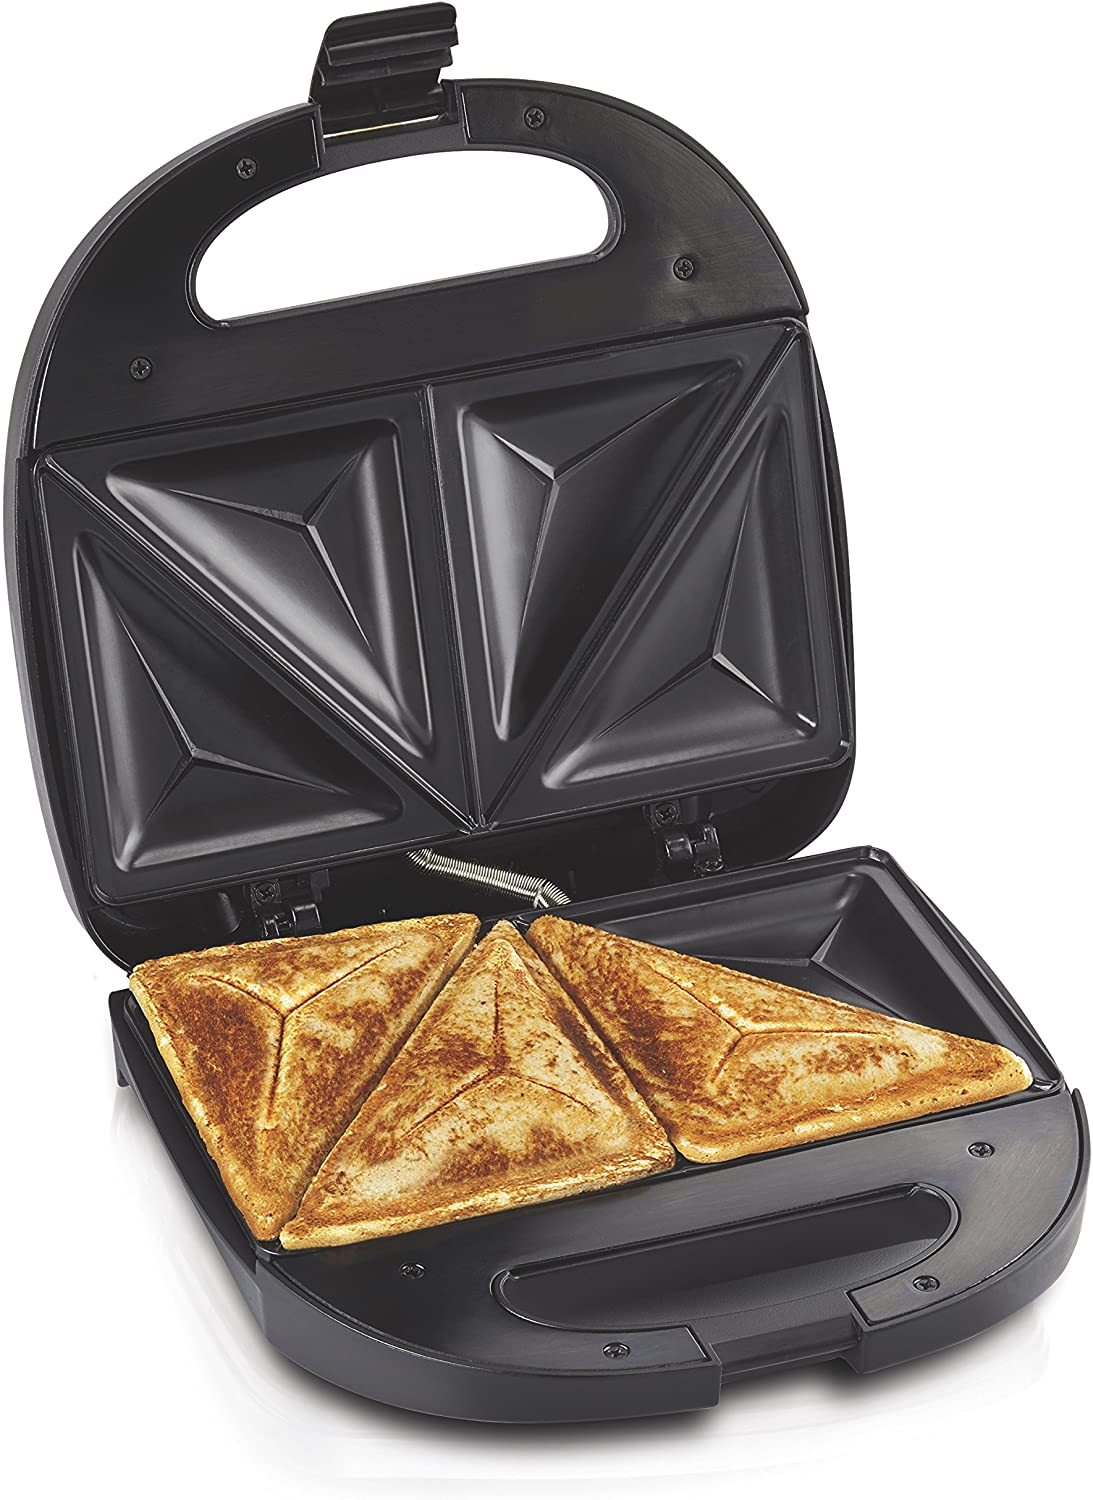 Hamilton Beach 4-Slice Non-Stick Belgian Waffle Maker with Indicator Lights, Compact Design, Black (26020): Electric Waffle Irons: Home & Kitchen